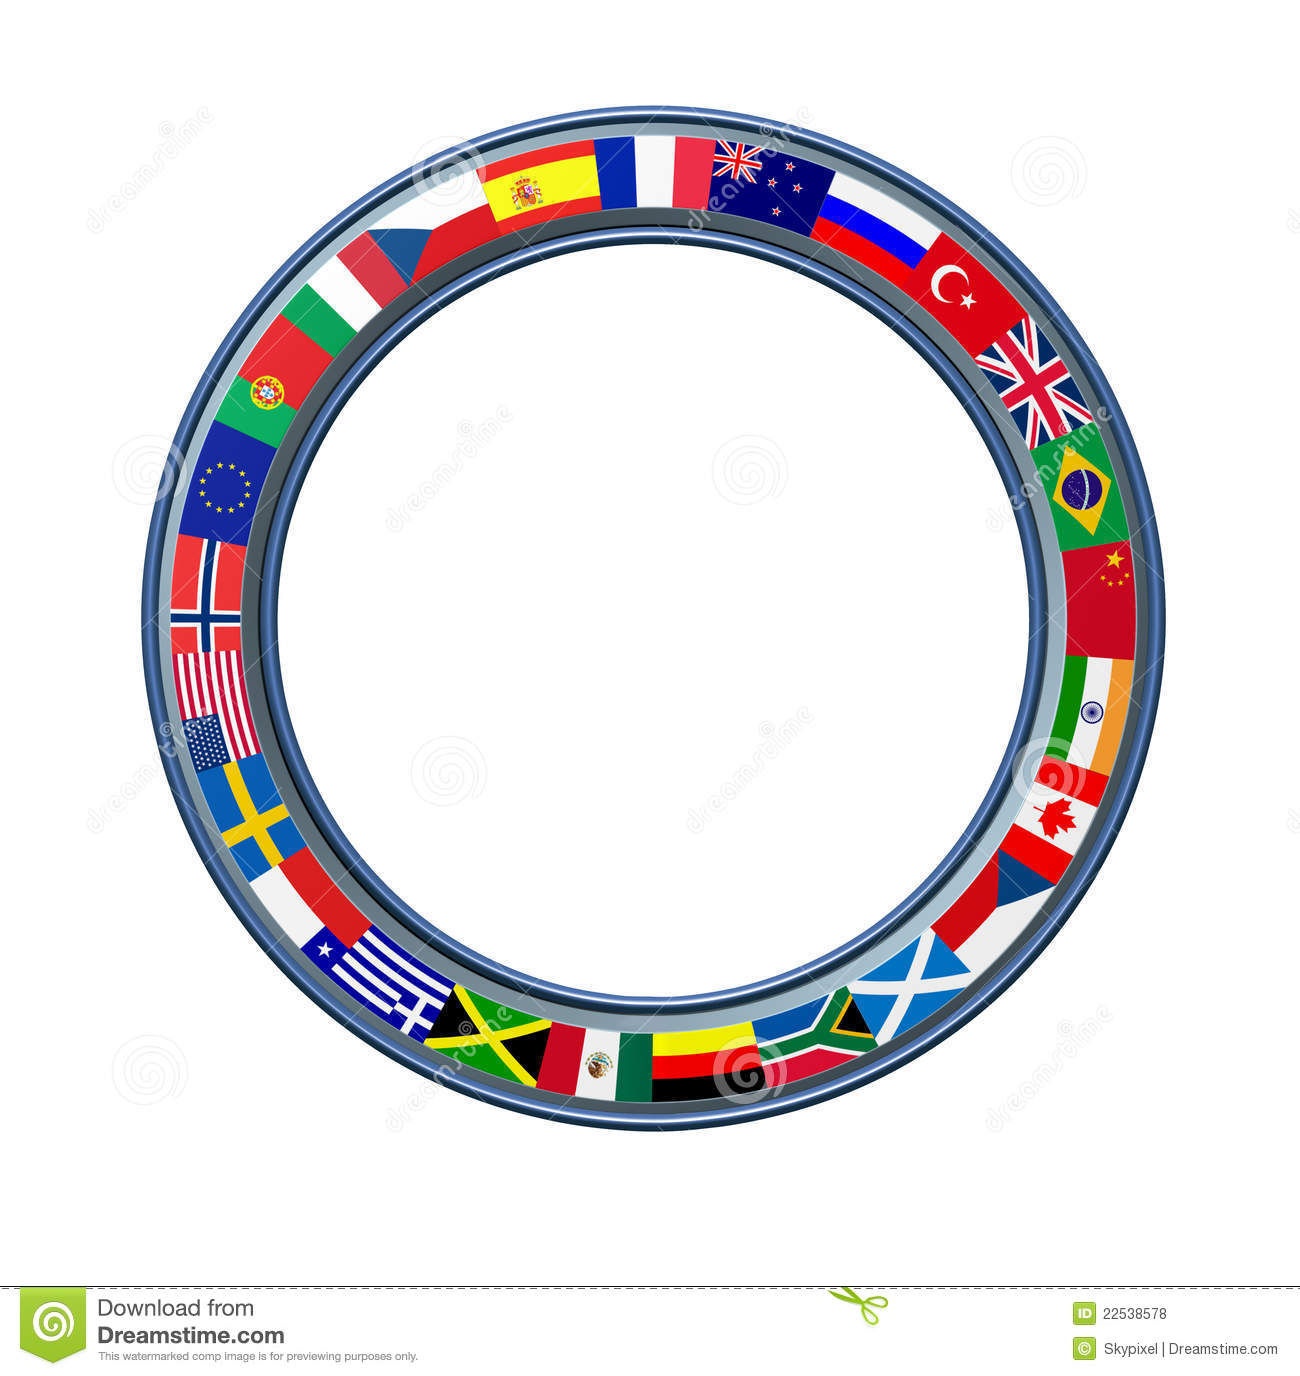 World ring of global flags as a circular blank frame with a metal trim ...